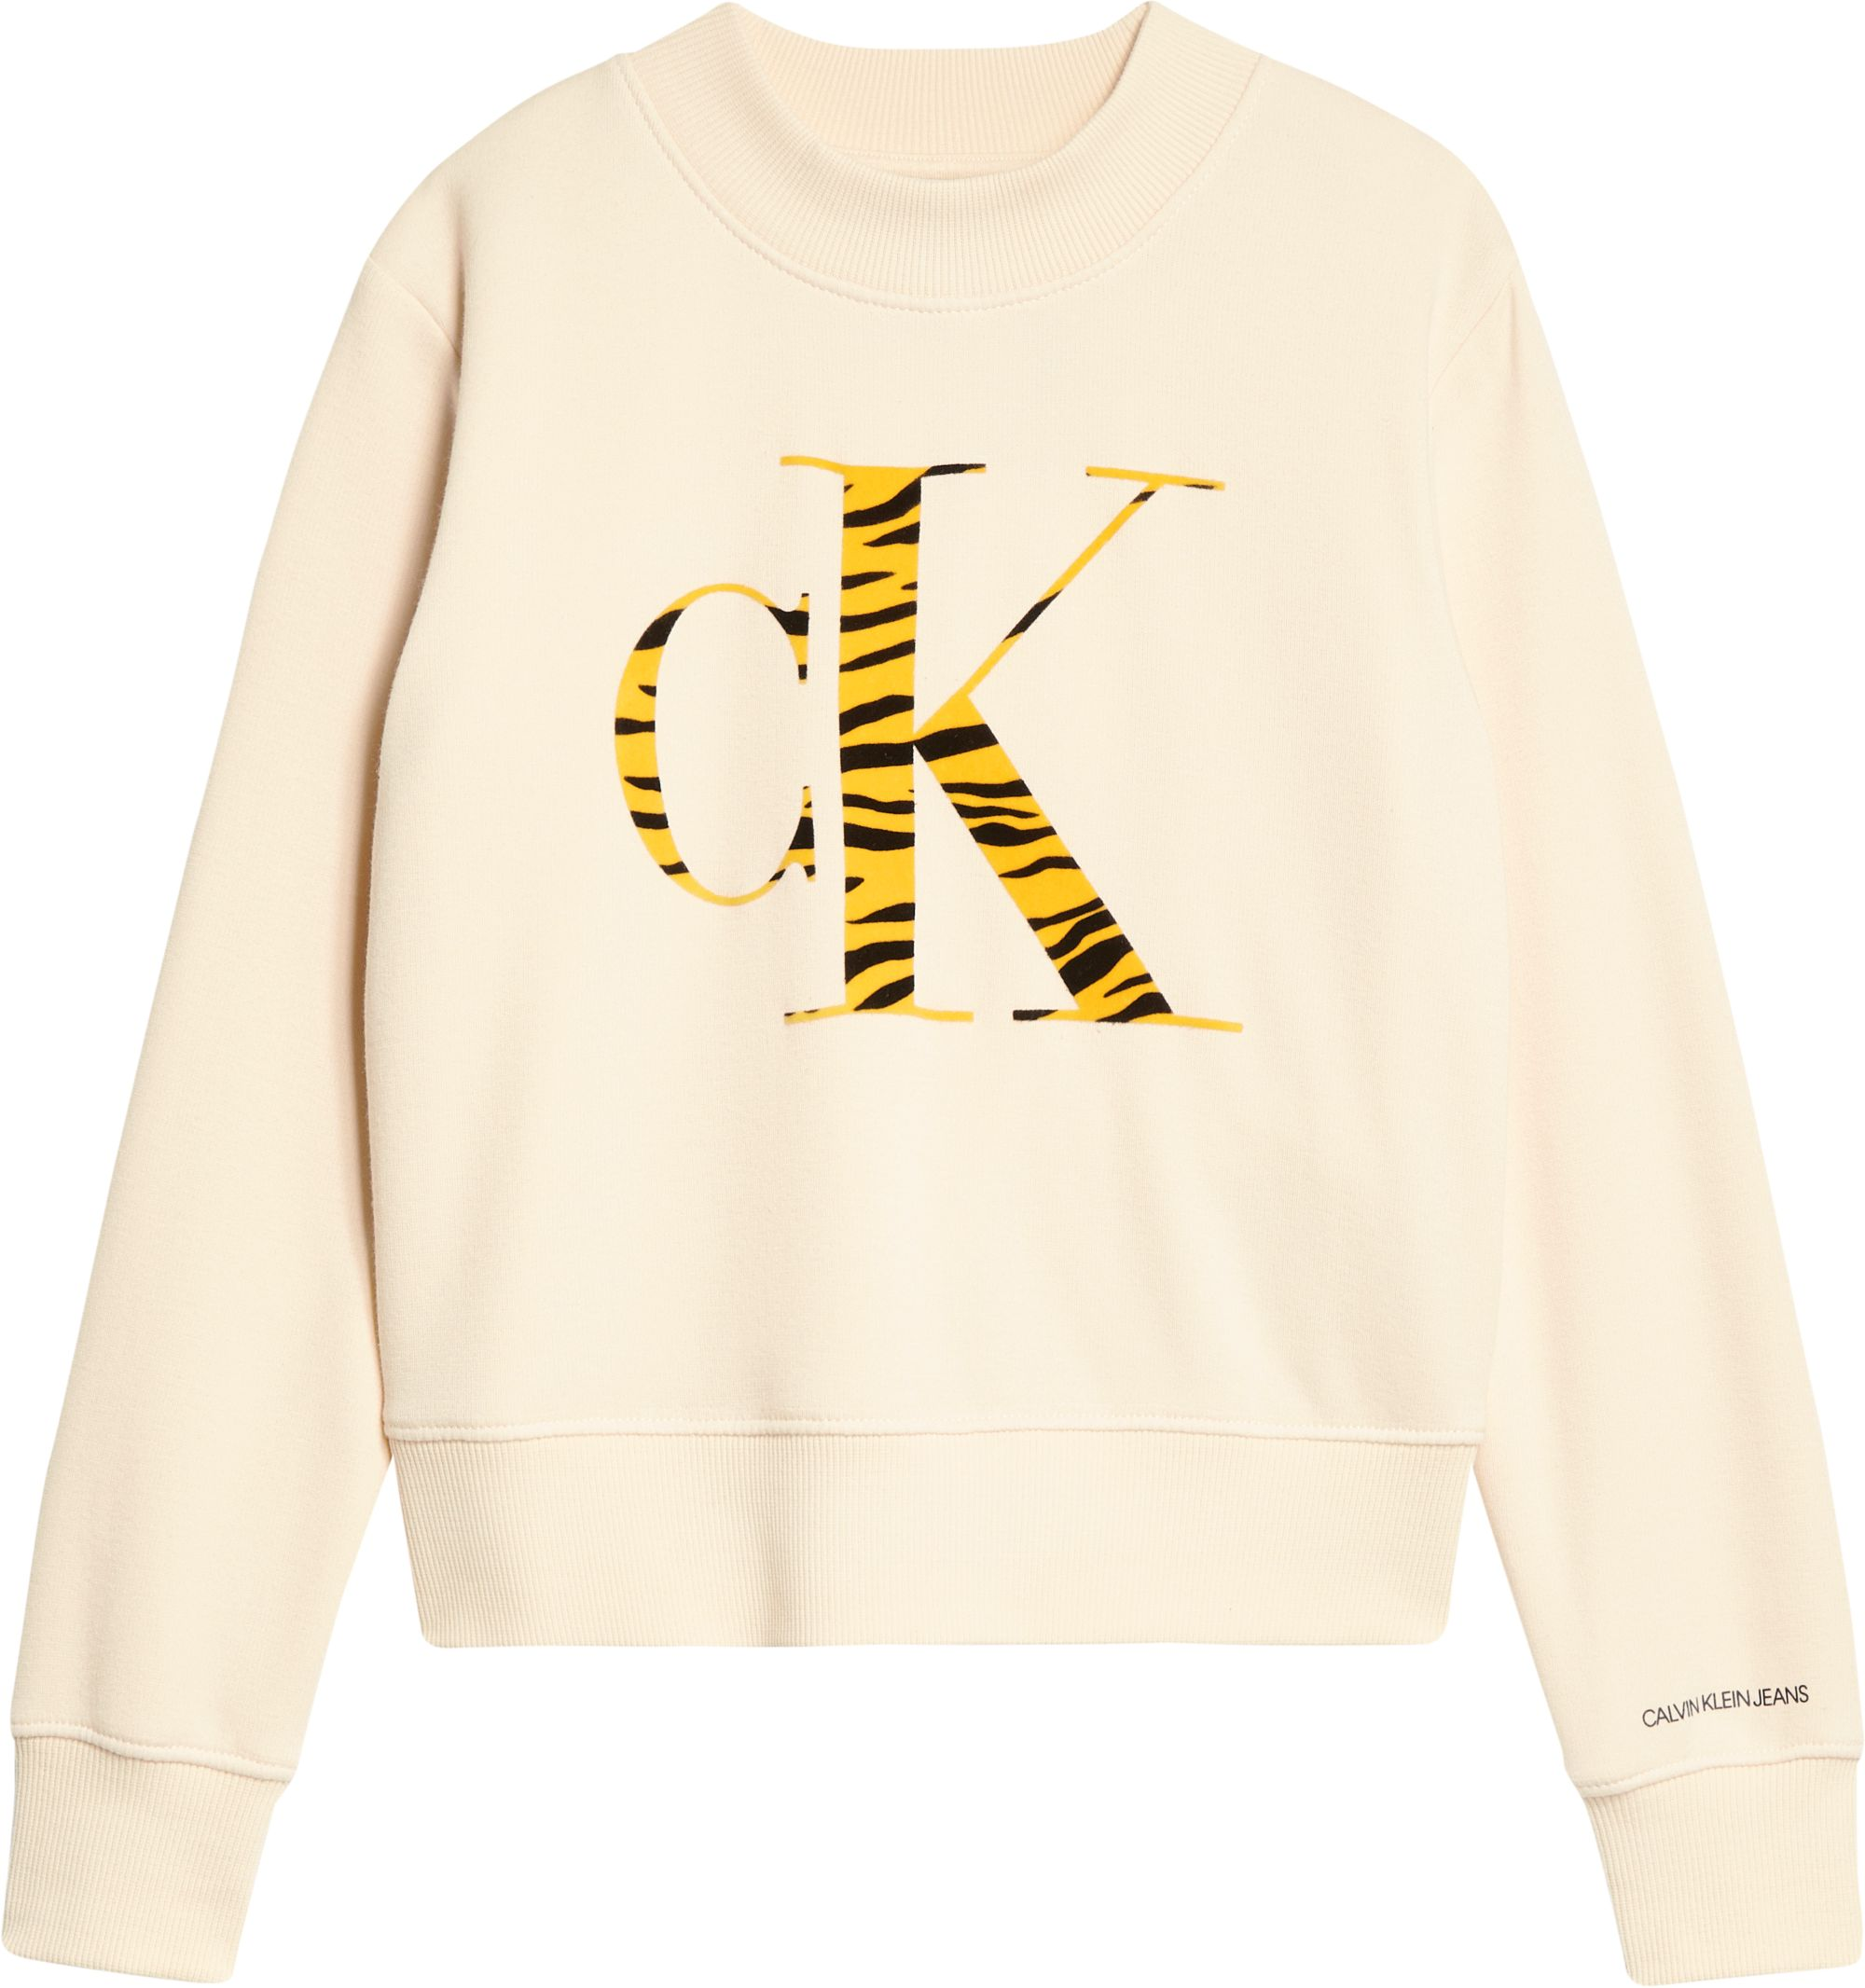 Calvin Klein, Urban Animal Flock collegepaita